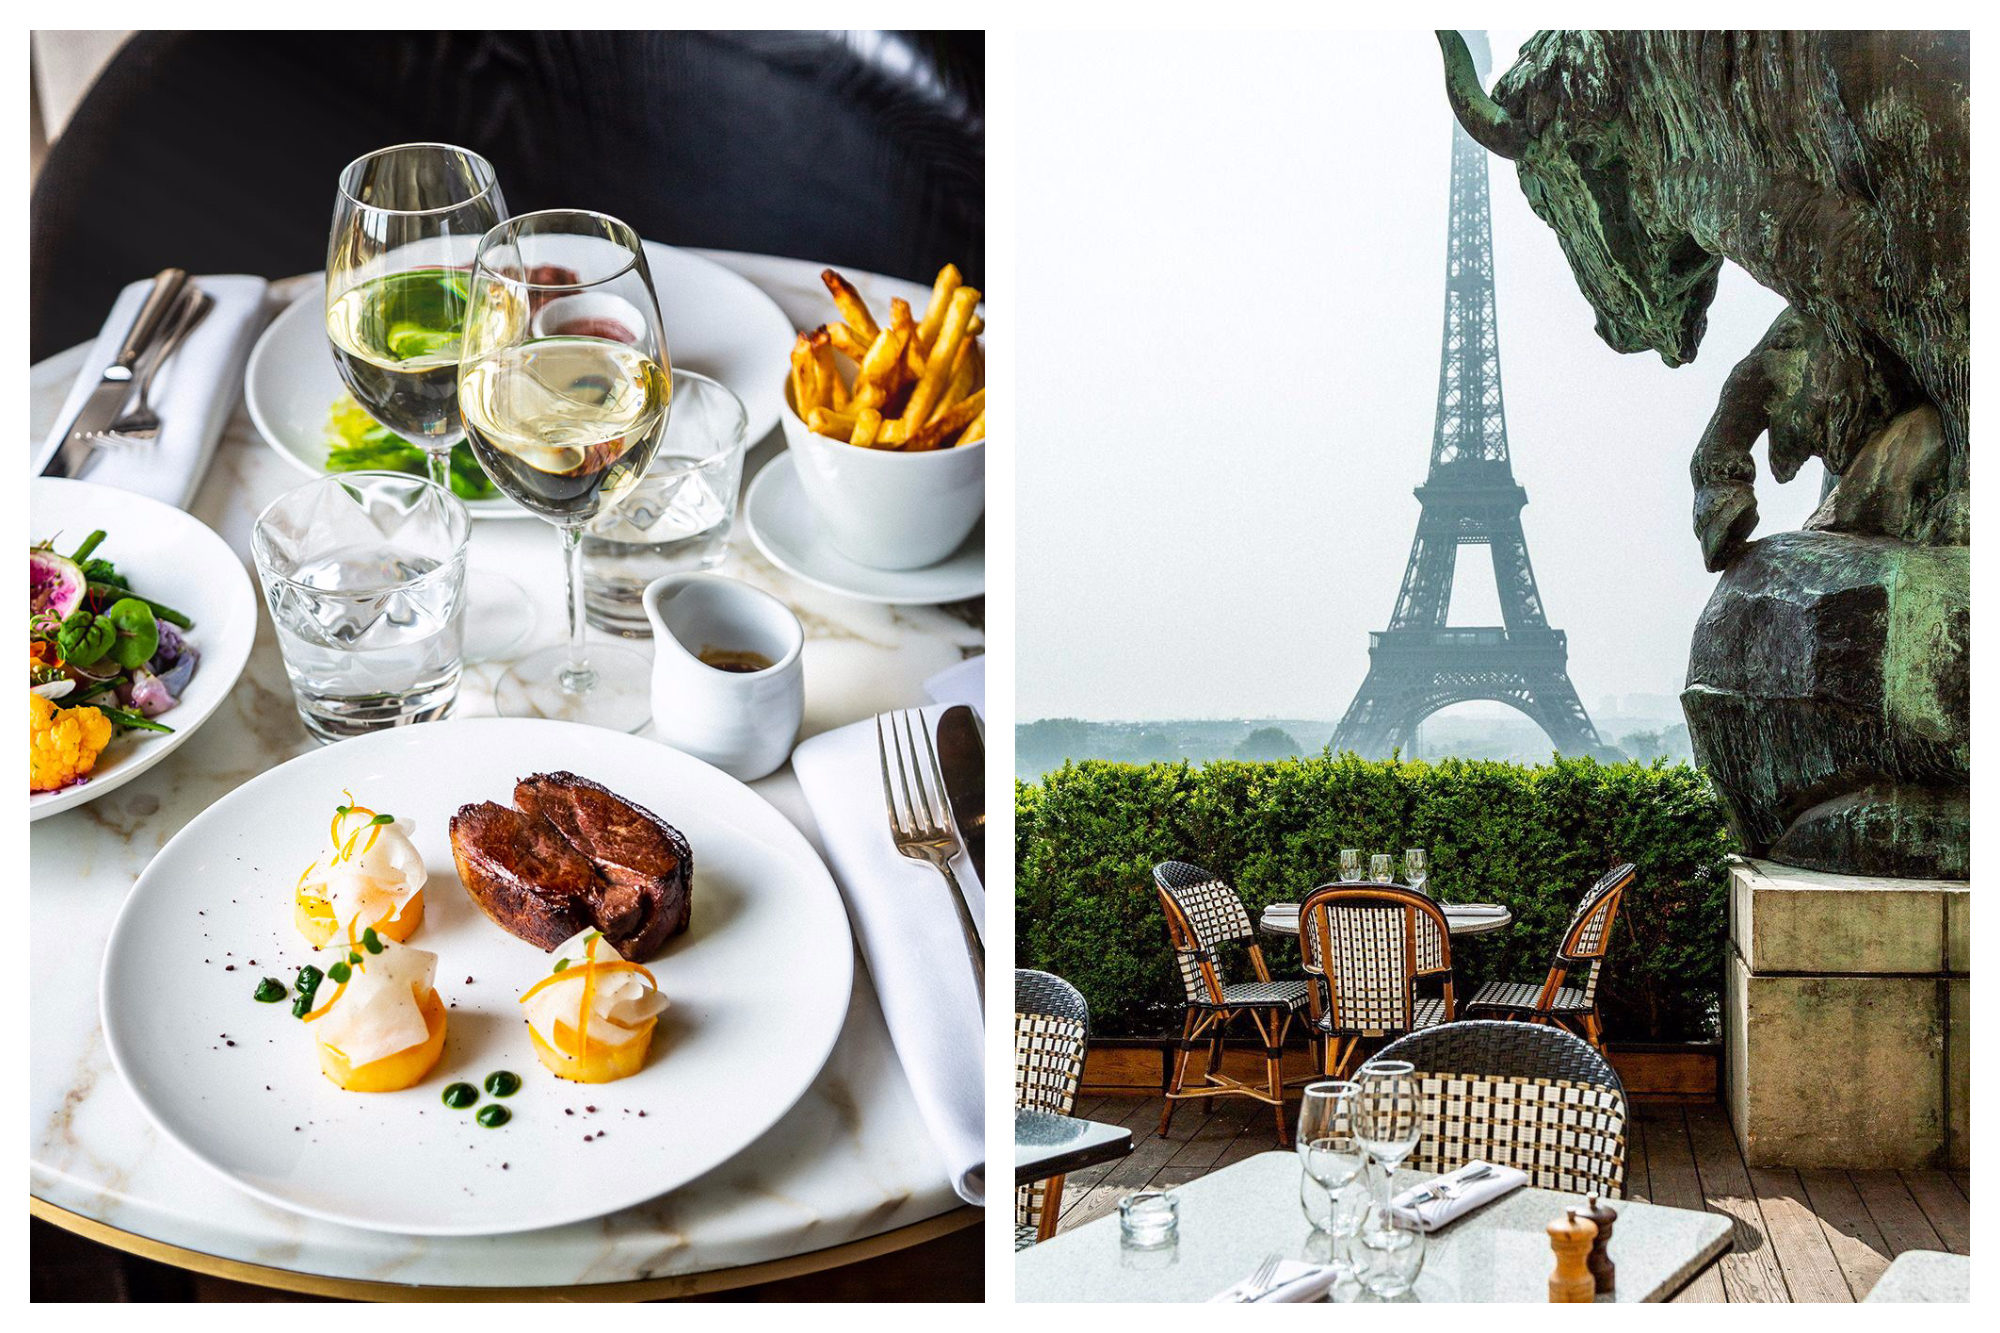 A beautifully laid table with a spread of contemporary steak and fries (left) and the outdoor terrace with a breathtaking view of the Eiffel Tower (right) at the Café de L'Homme in Paris.